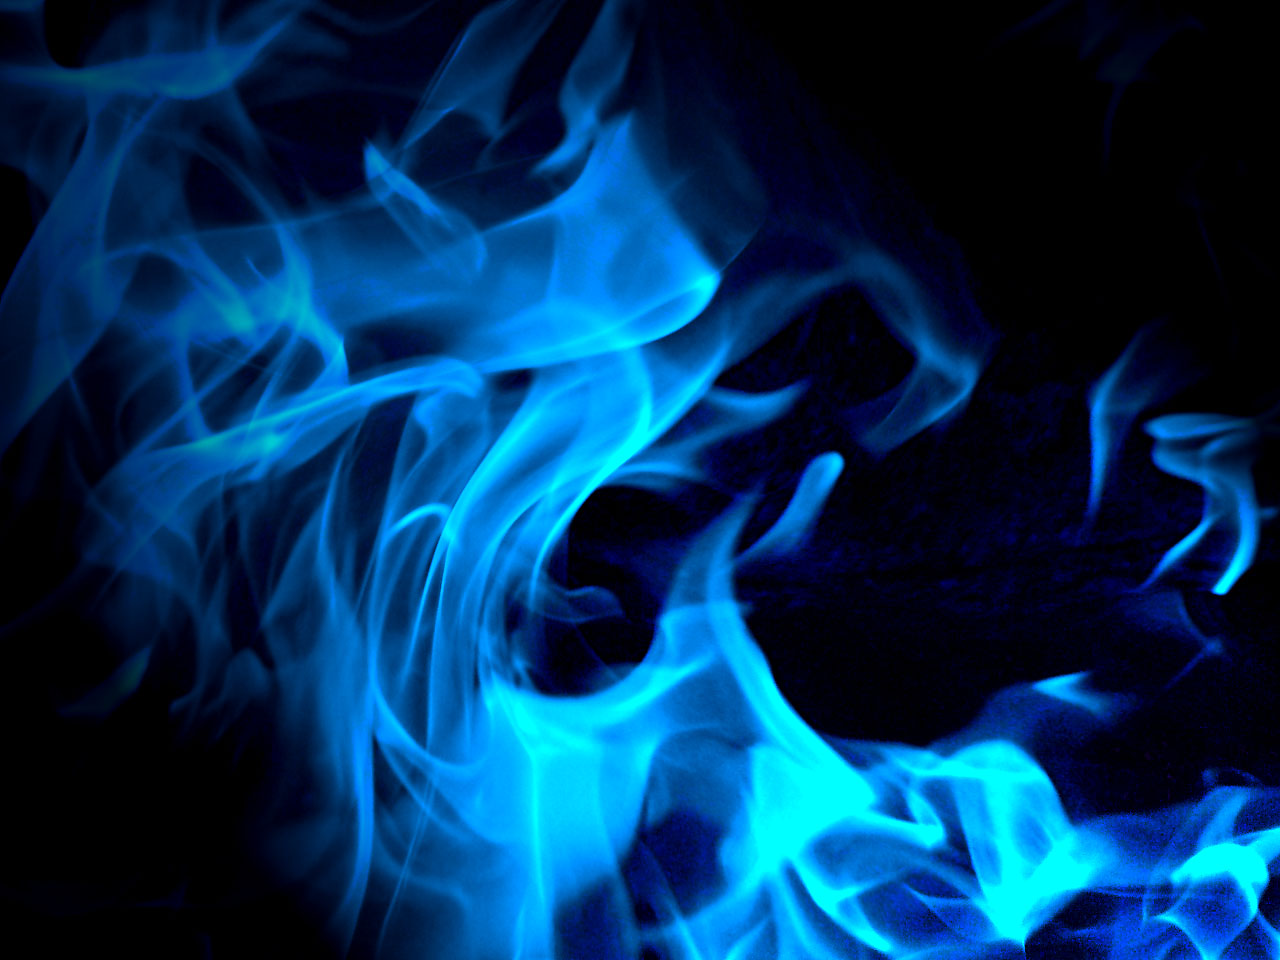 hd wallpapers blue fire pictures blue fire pictures blue fire pictures 1280x960